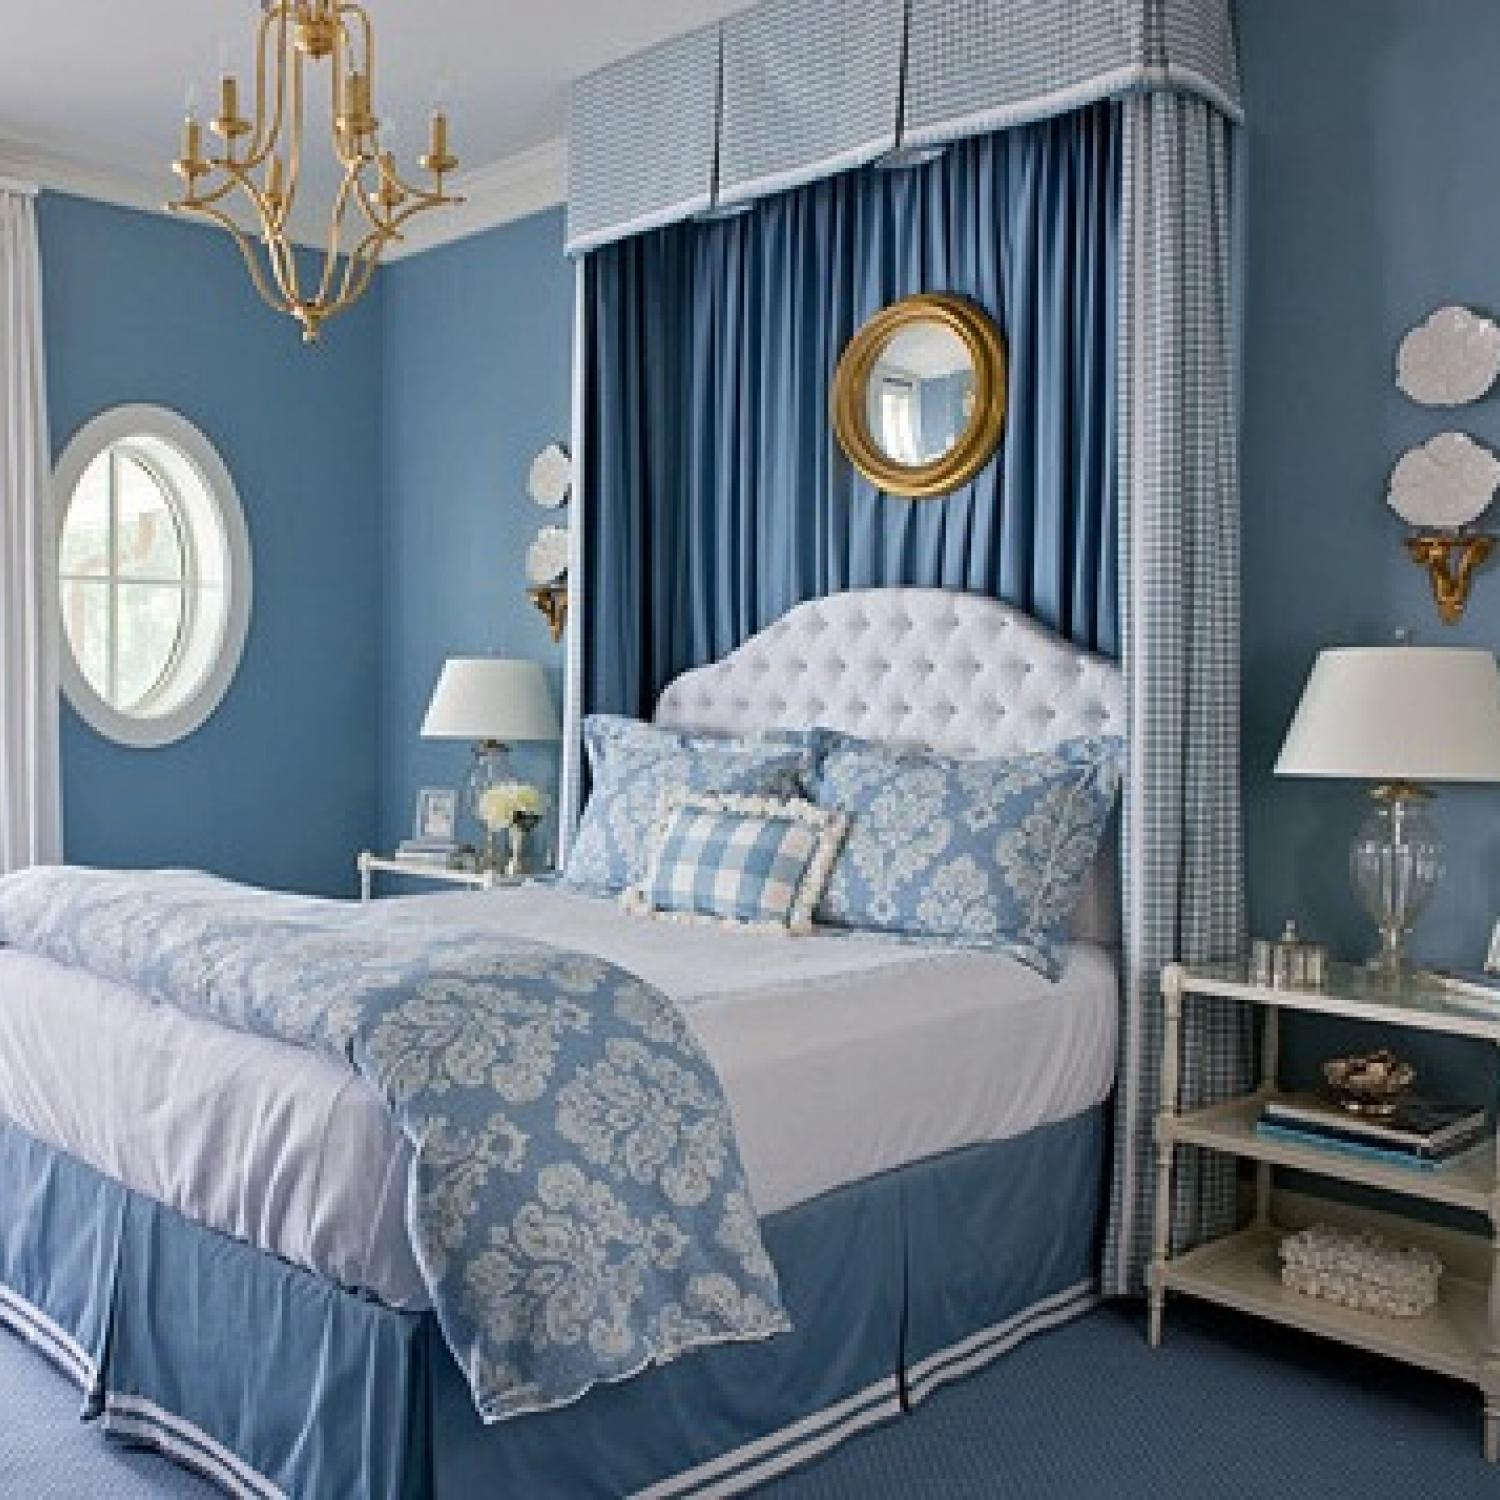 Decoration Den Decoration Ideas Bedroom Decorating: Beautiful Blue Bedrooms